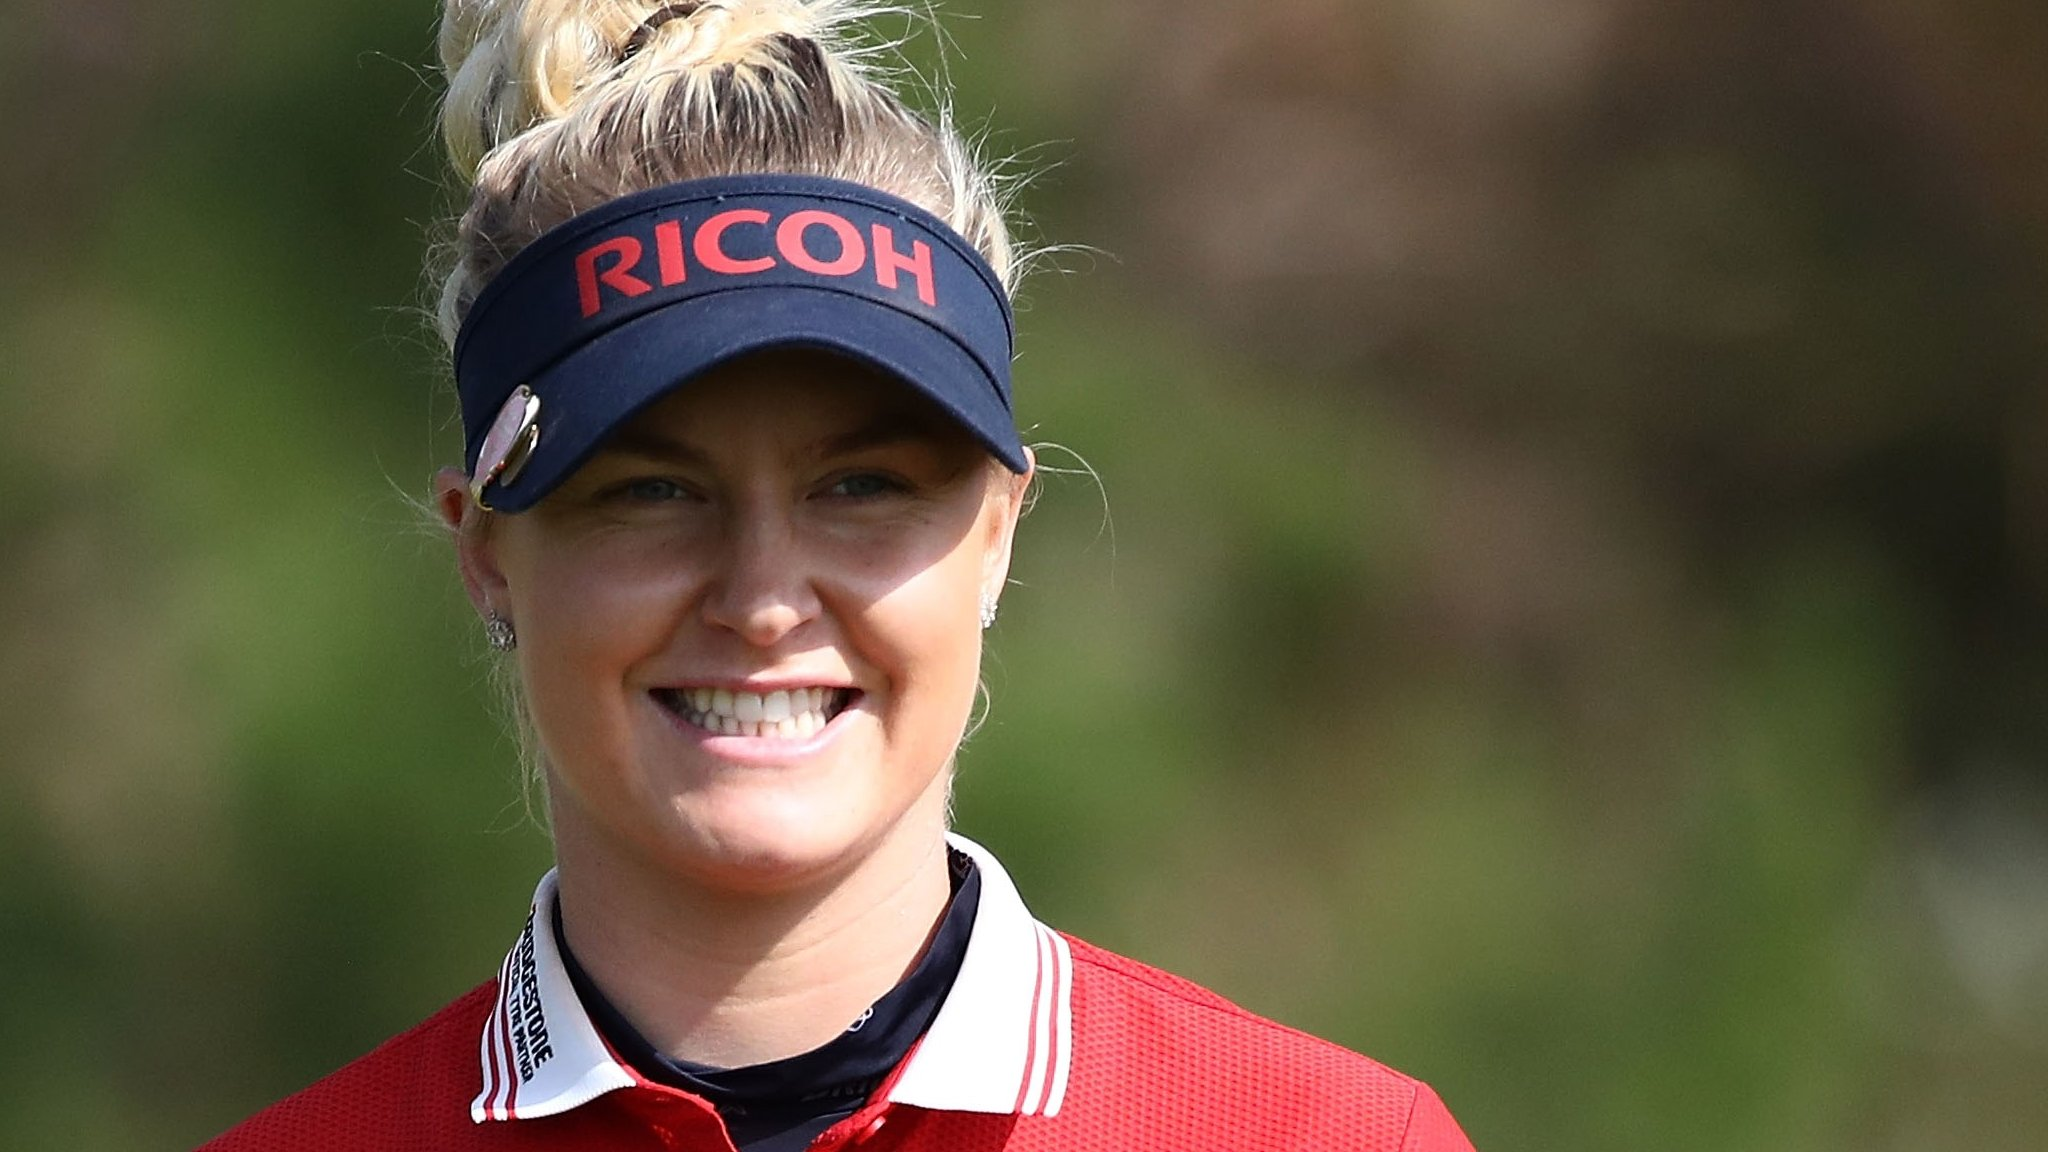 England's Hull completes wire-to-wire victory in Abu Dhabi